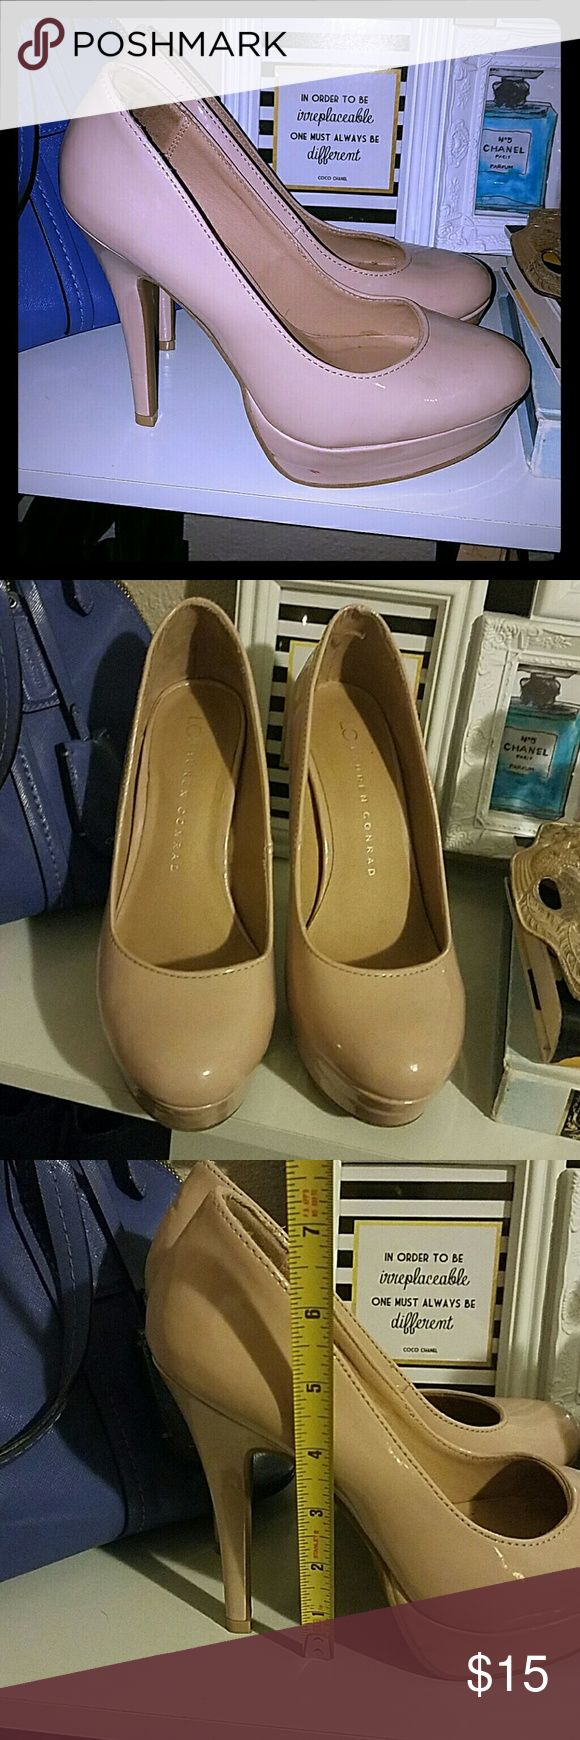 """Lauren Conrad Nude Patent Pumps Lauren Conrad """"Johanna"""" Pumps. Worn several times, they do have a few scuffs but they're still adorable! Versatile, ready to go for any outfit. LC Lauren Conrad Shoes Heels"""